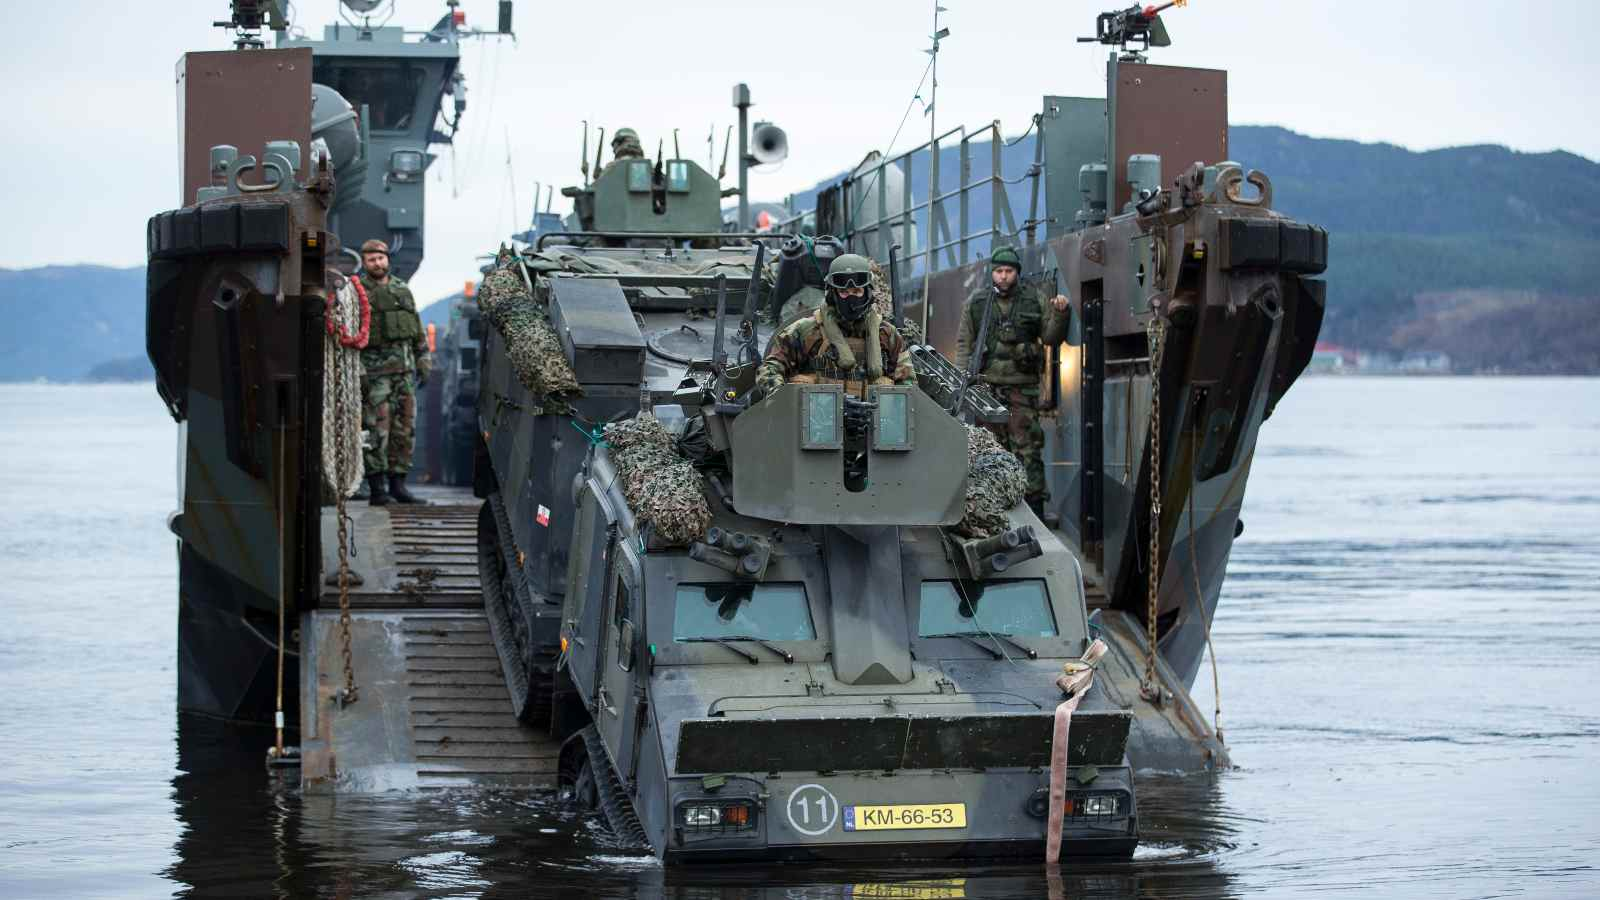 Dutch marines landing. Kyrksaeterora, Norway. Trident Juncture 2018.     Trident Juncture 2018 is NATO's largest exercise in many years, bringing together around 50,000 personnel from all 29 Allies, plus partners Finland and Sweden. Around 65 vessels, 150 aircraft and 10,000 vehicles will participate.     Photo: Ilari Välimäki, Finnish Defence Forces, Combat Camera